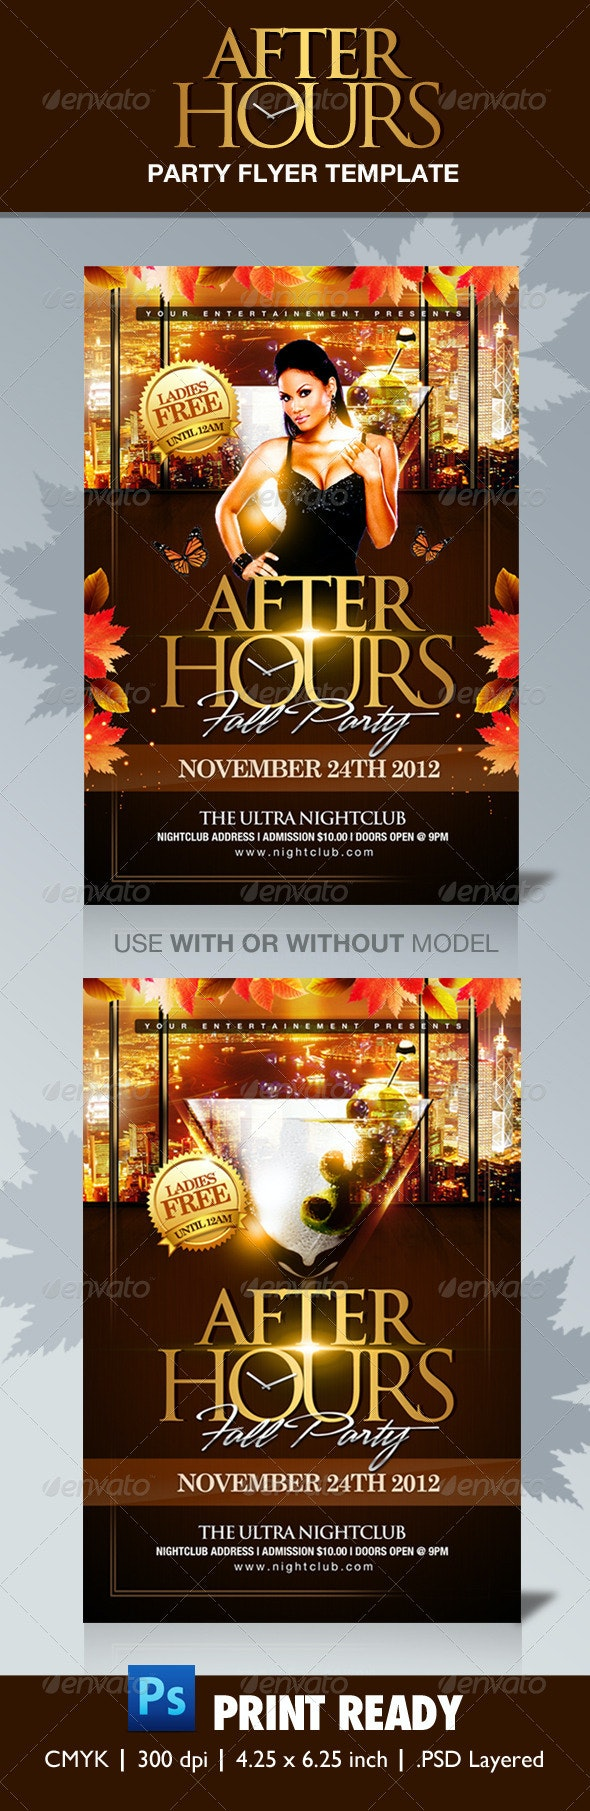 After Hours Party Flyer Template - Clubs & Parties Events